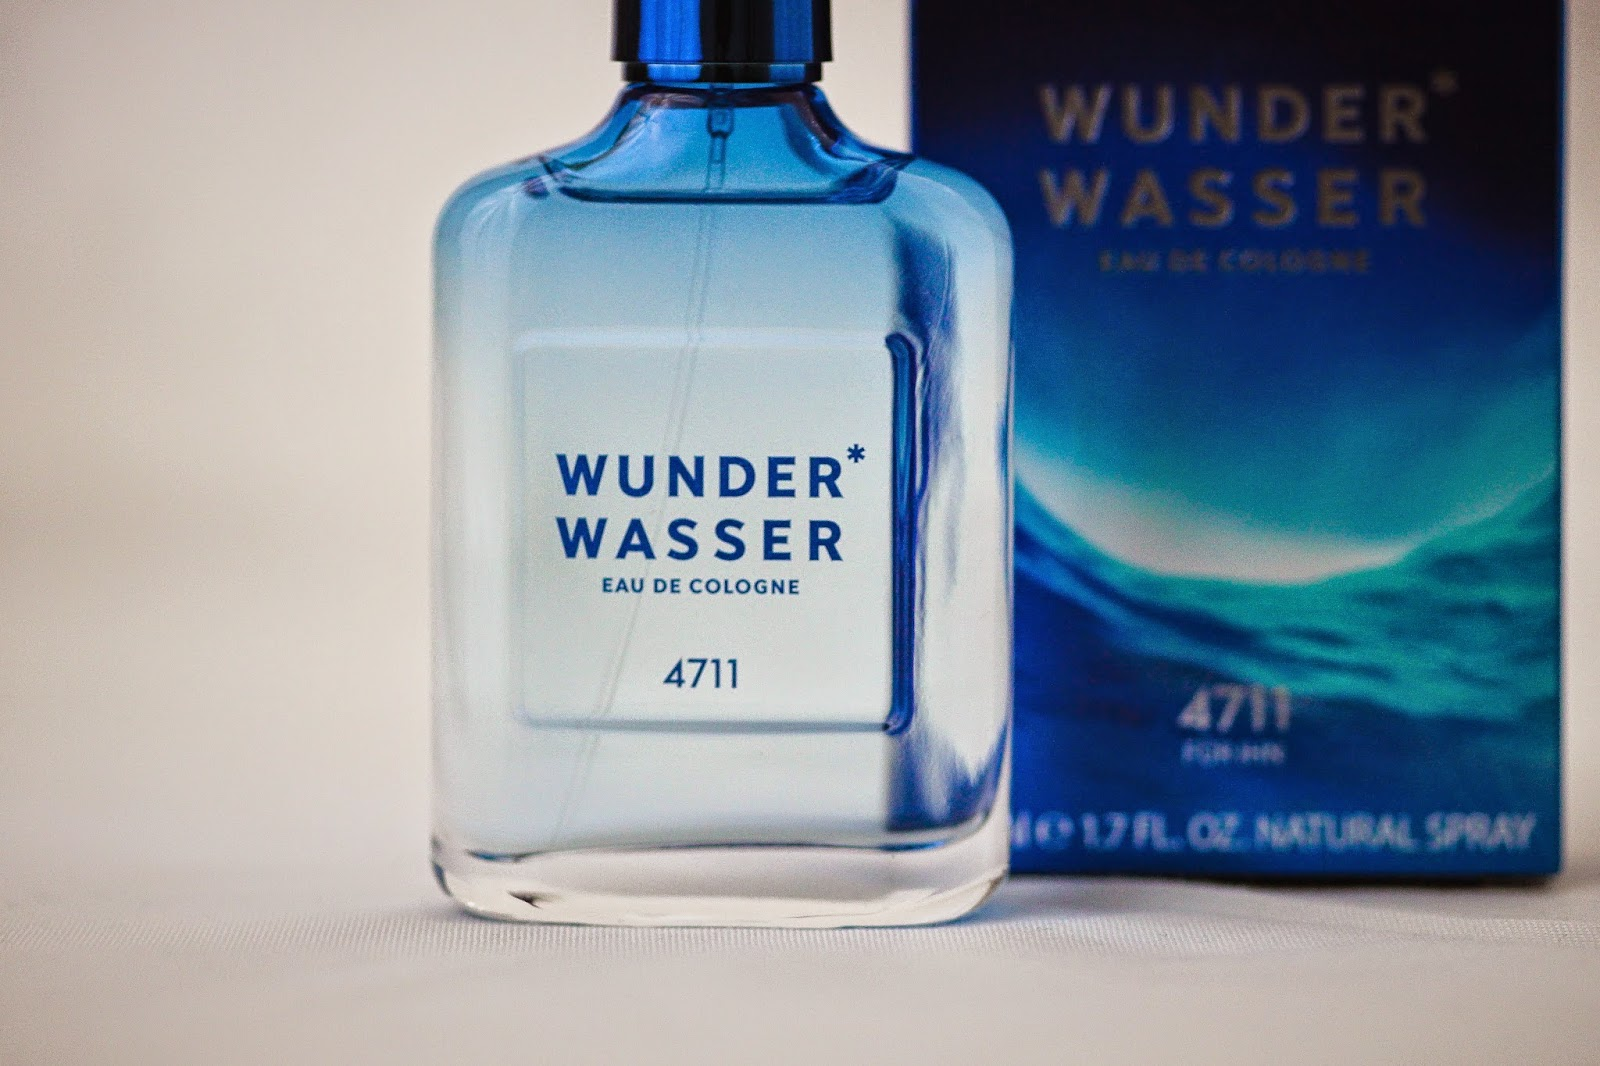 WUNDERWASSER 4711 PRIZMAHFASHION